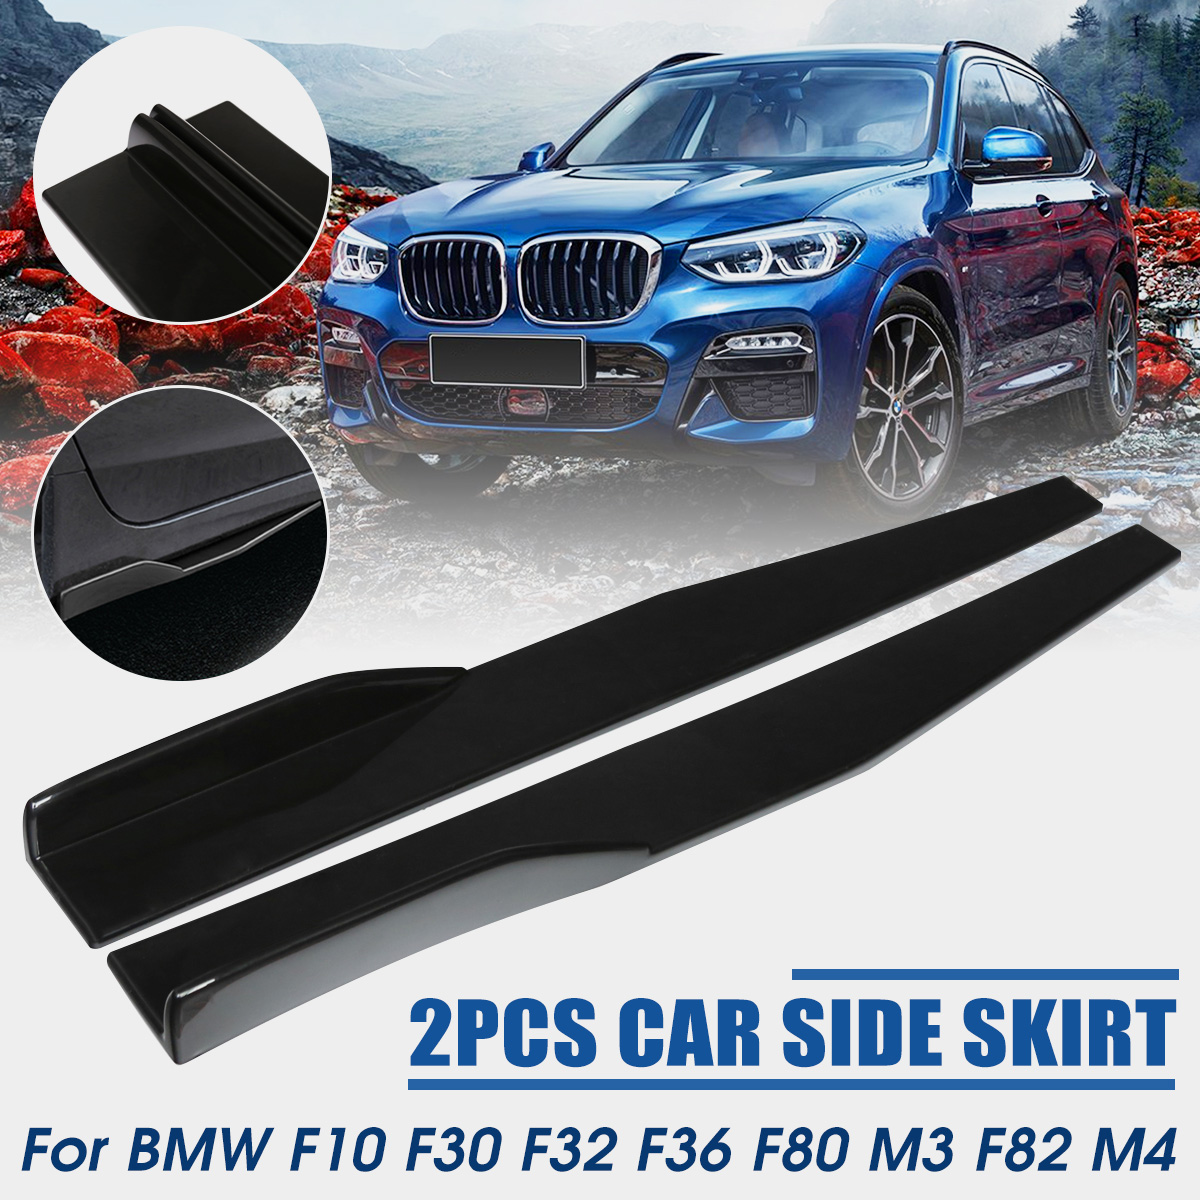 2pcs 74.5cm Universal Car Side Skirt Rocker Splitter Winglet Side Wing Bumper Lip Bumper Black/Red/Carbon Fiber Look Side Skirts